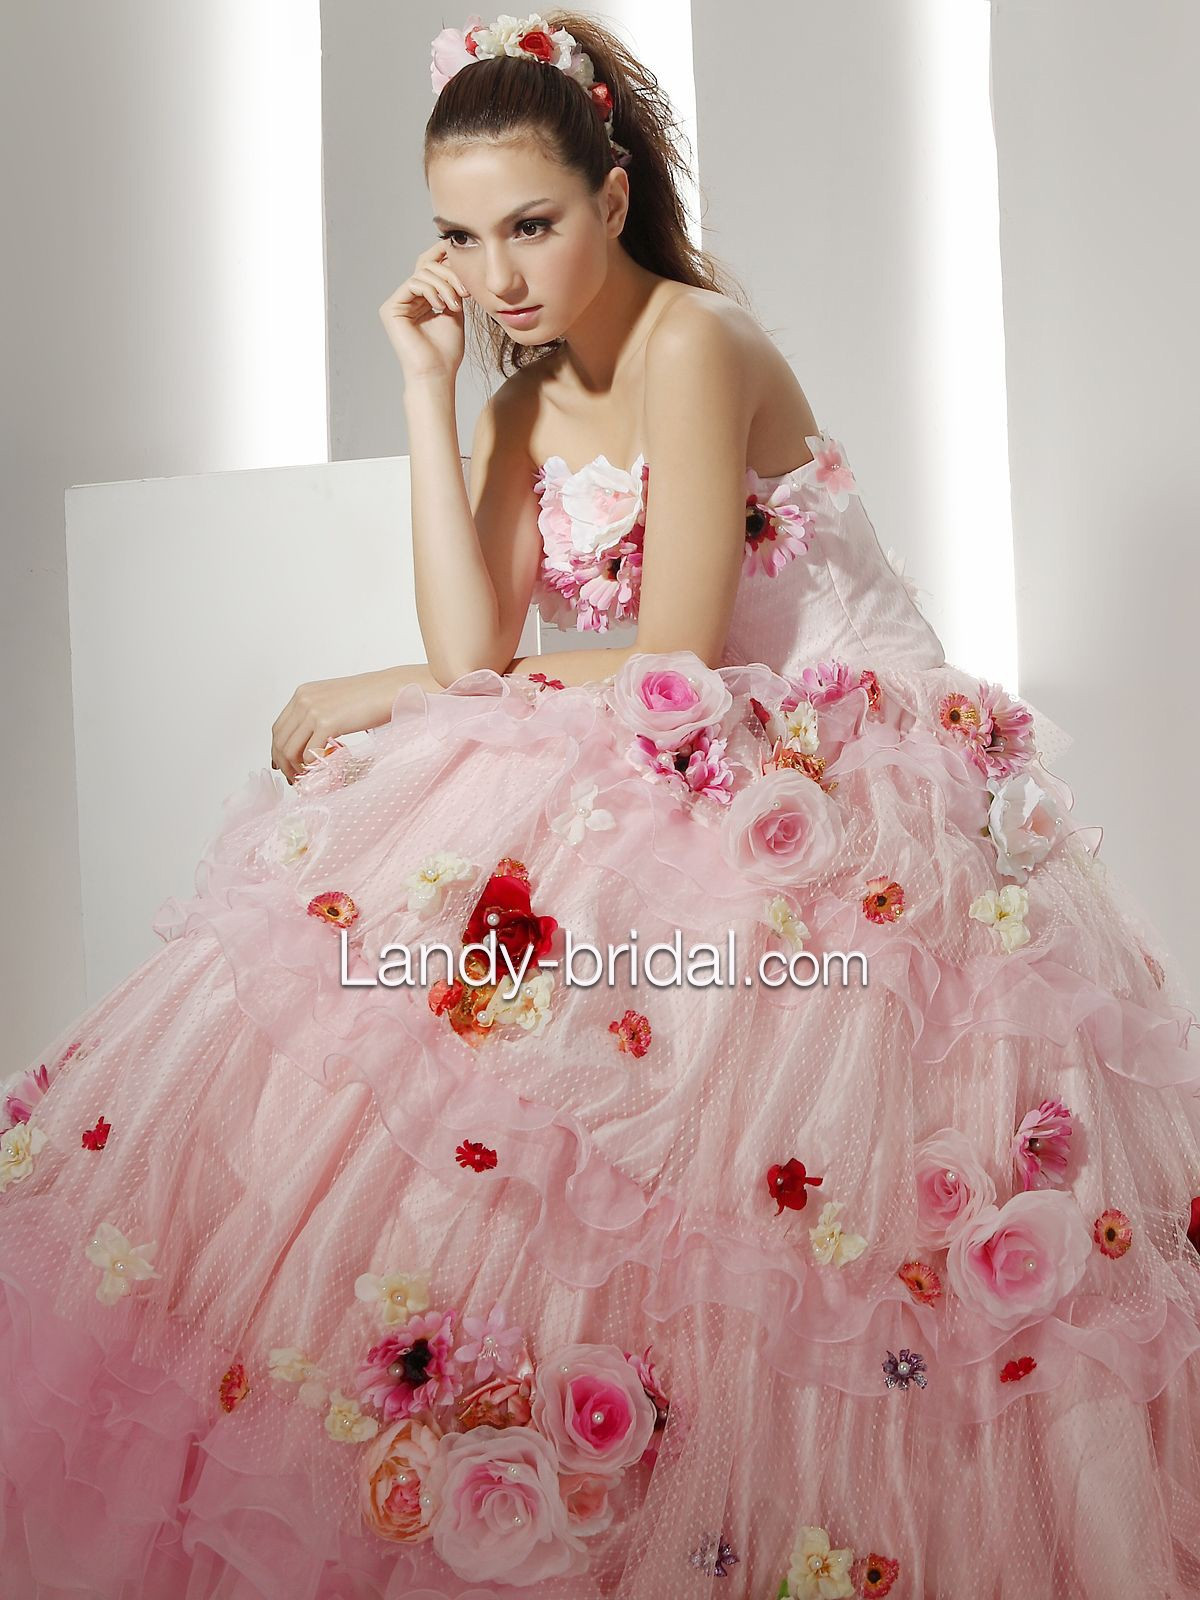 Pink Gowns Dress For Weddings  WP images Pink wedding dress